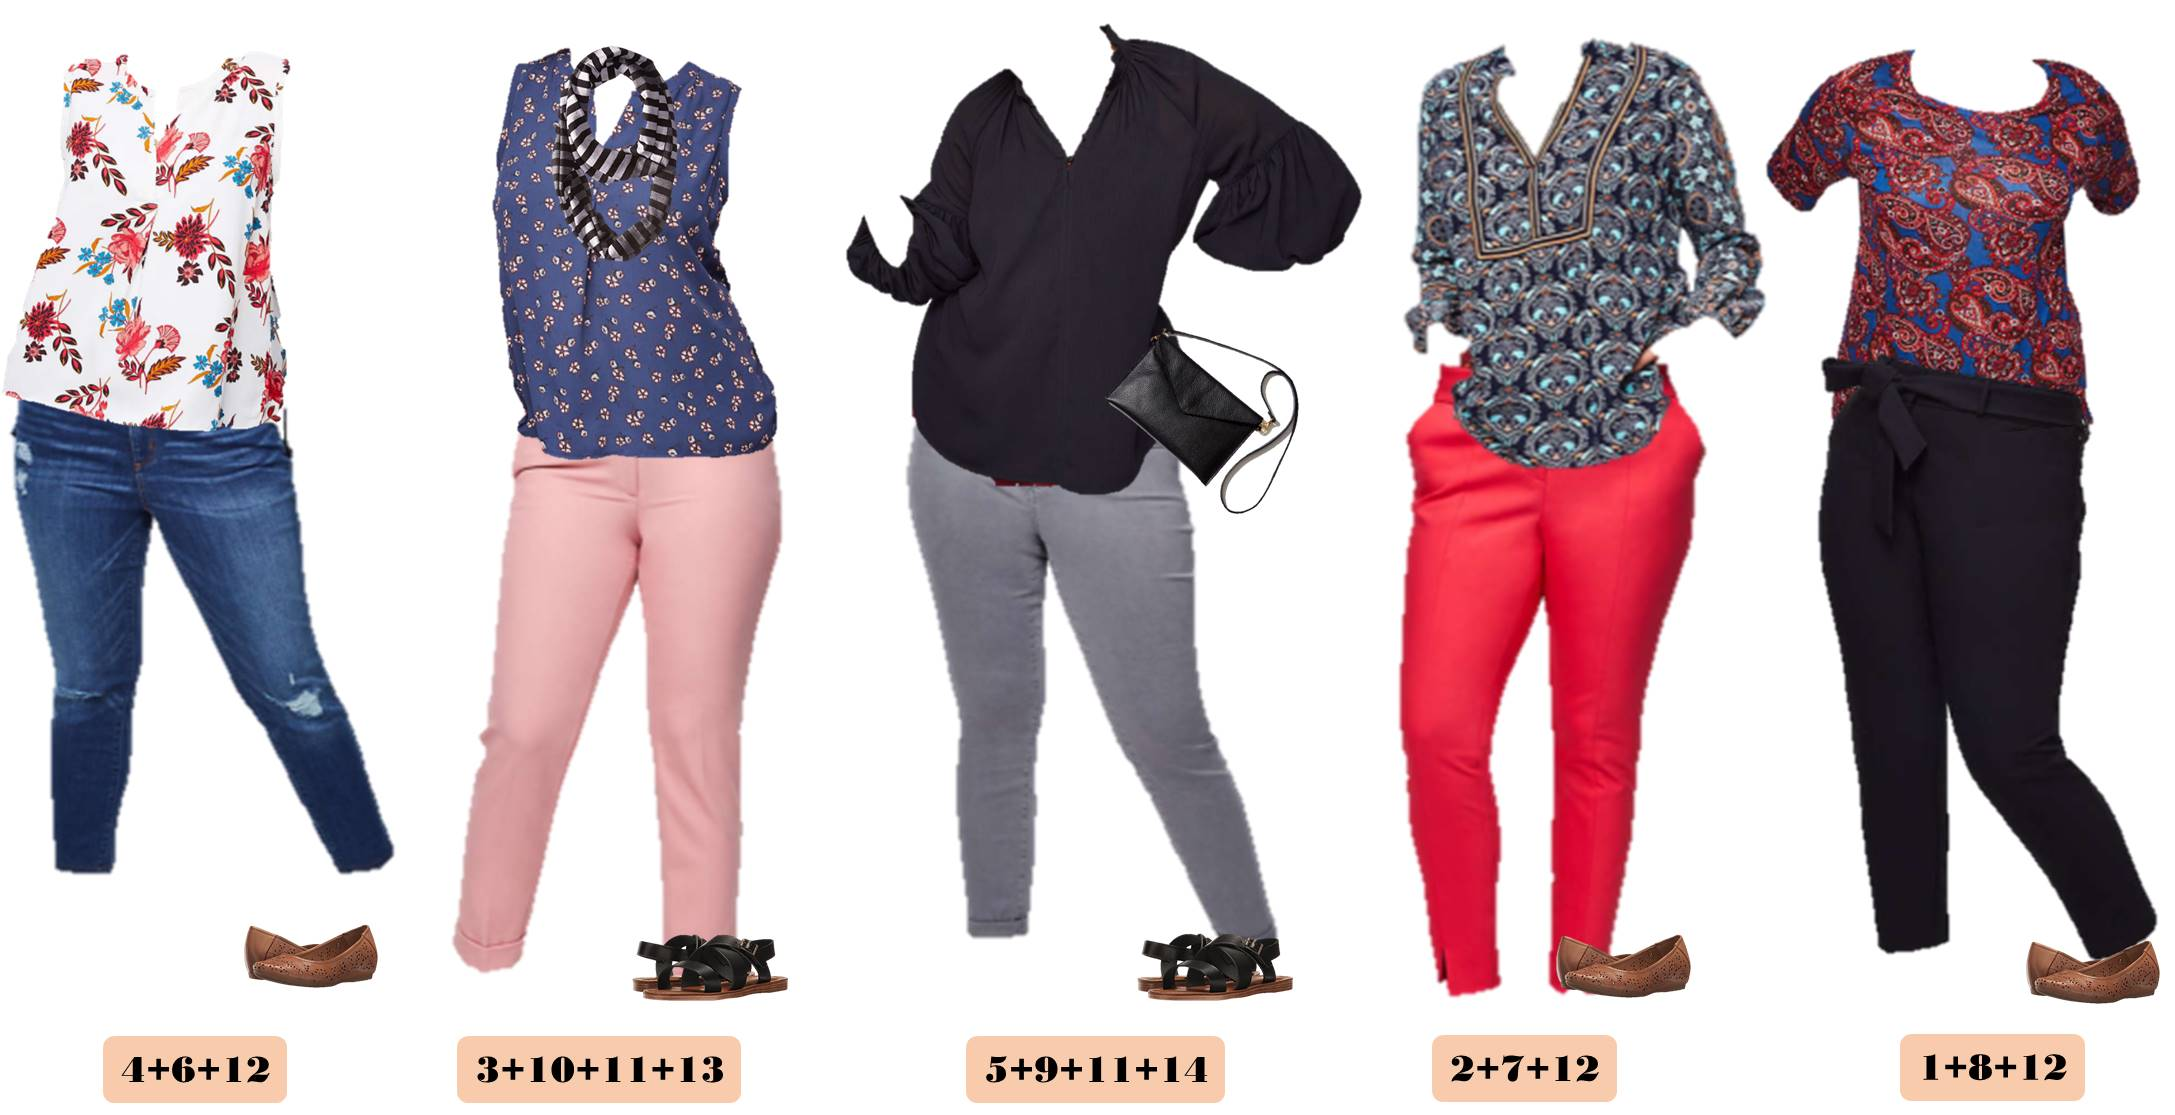 b61ae350b8b Plus Size Business Suits - Macy s - Shop Fashion Clothing .